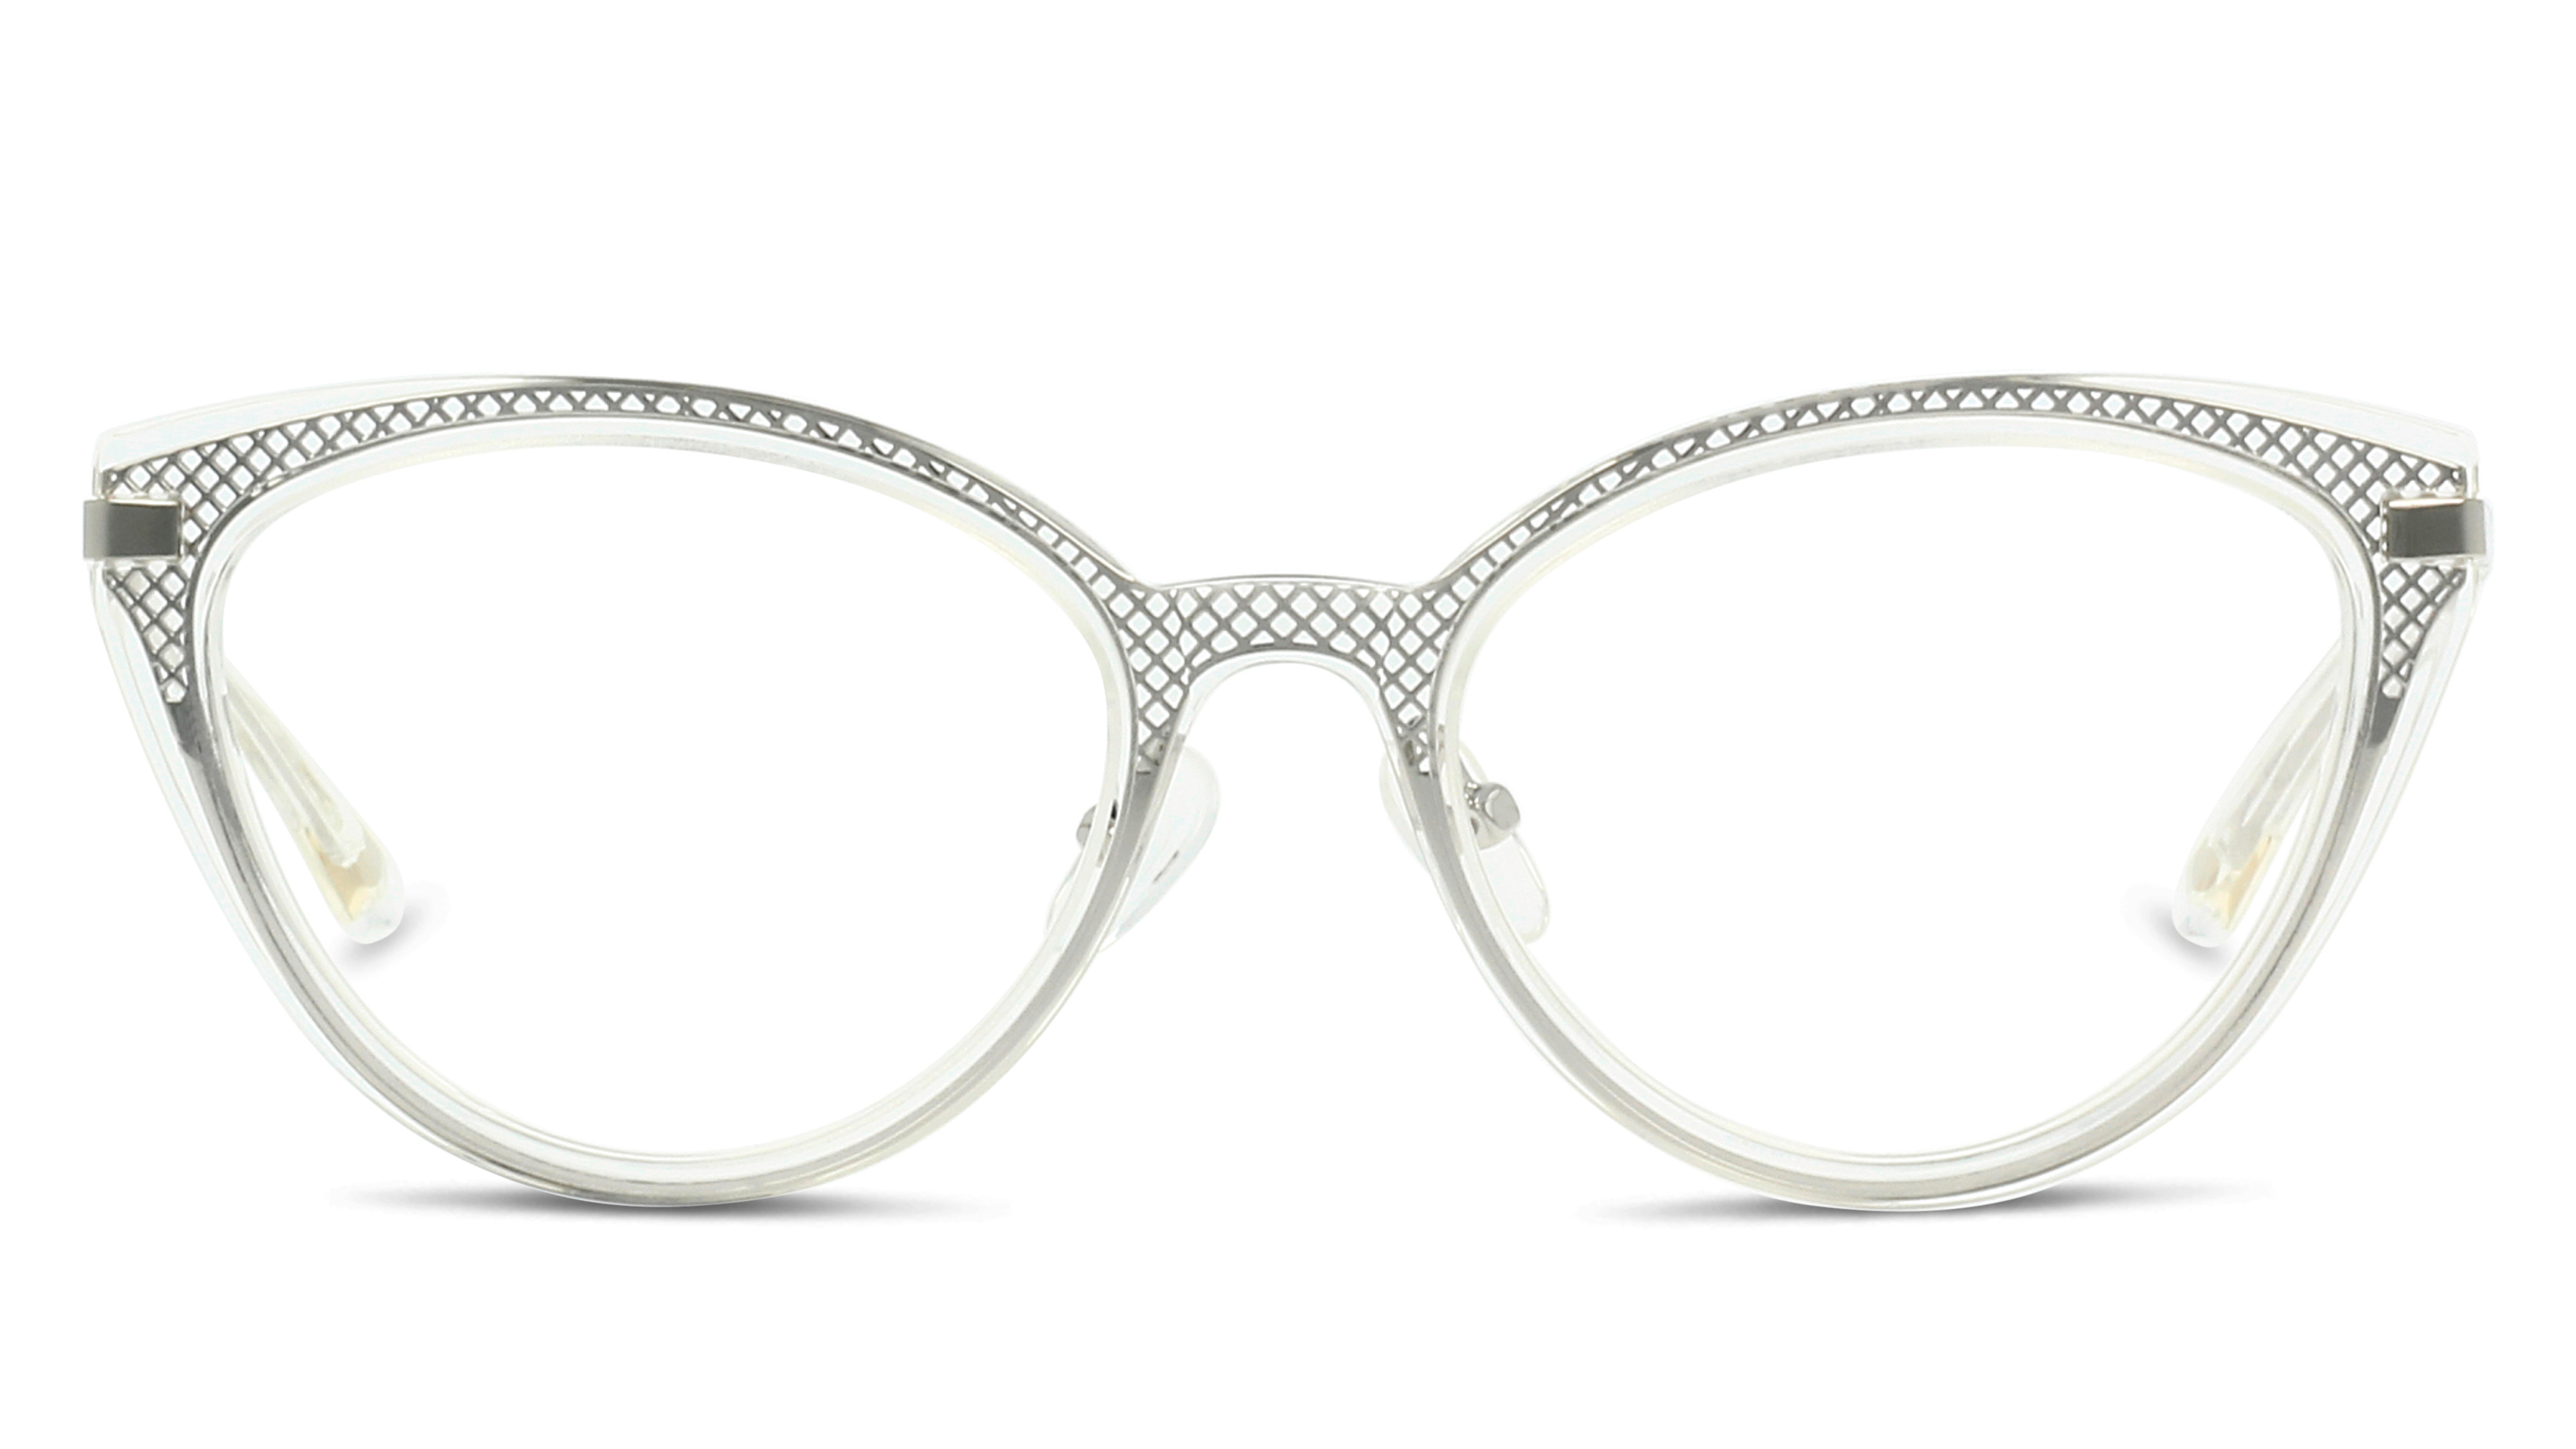 8719154621383-front-01-fuzion-fuhf01-eyewear-other-silver